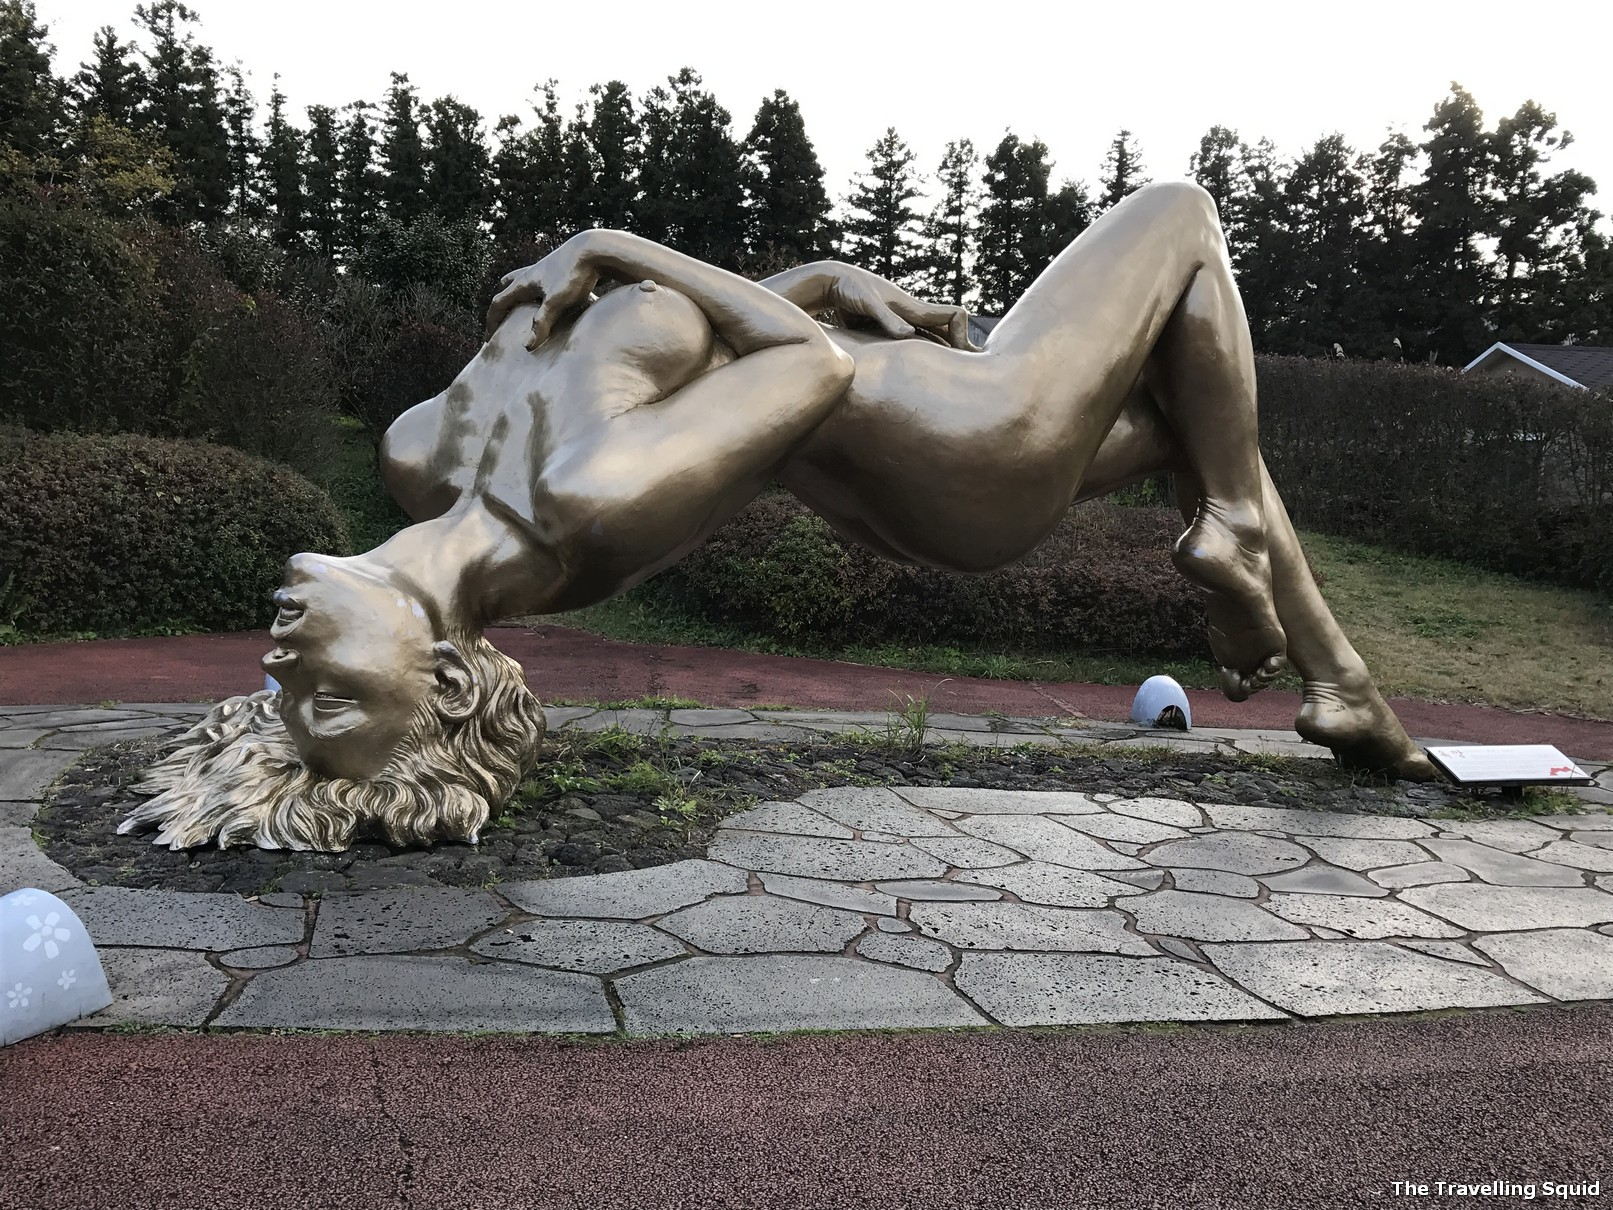 jeju loveland bronze sex sculptures